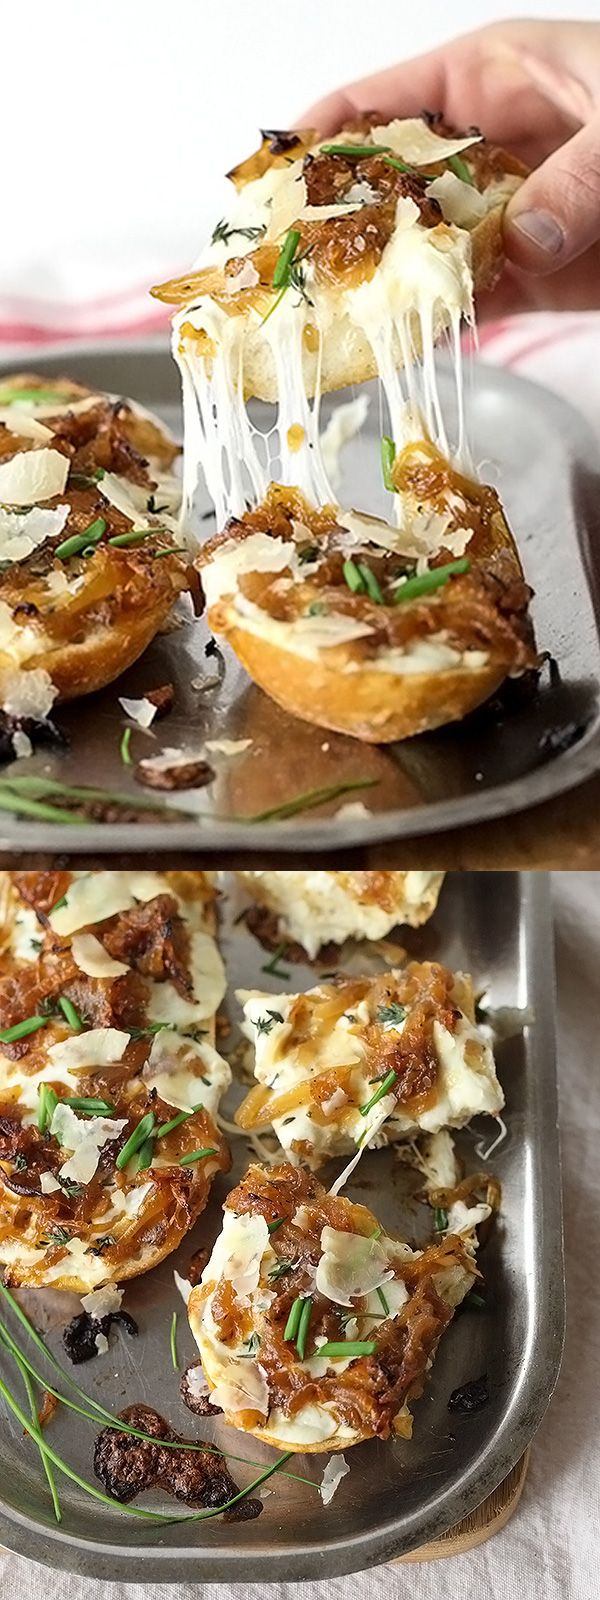 French Onion Cheese Bread | foodiecrush.com | Appetizer ...